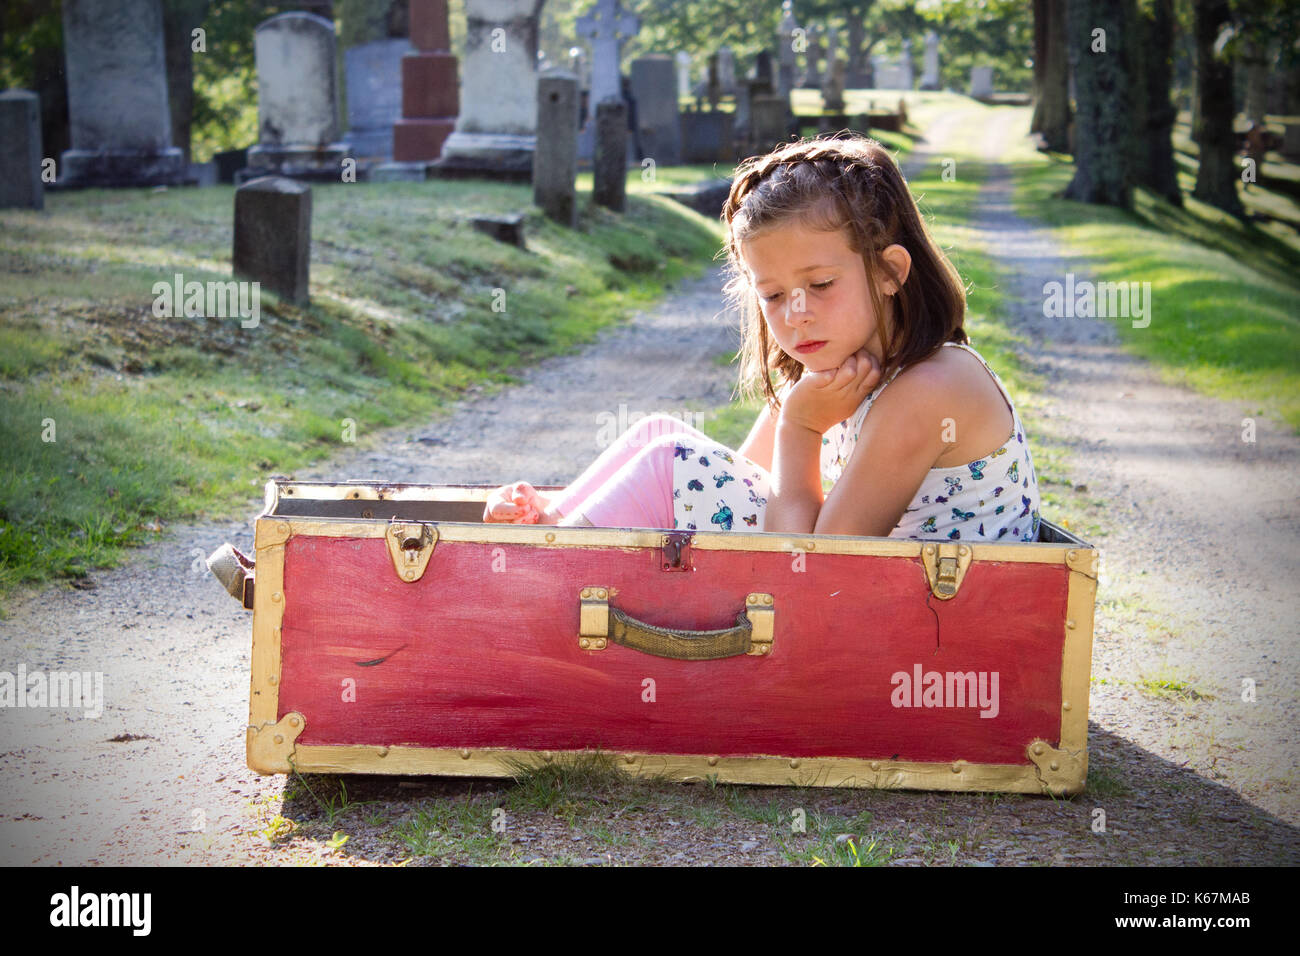 small child in a red box is sad in a graveyard - Stock Image